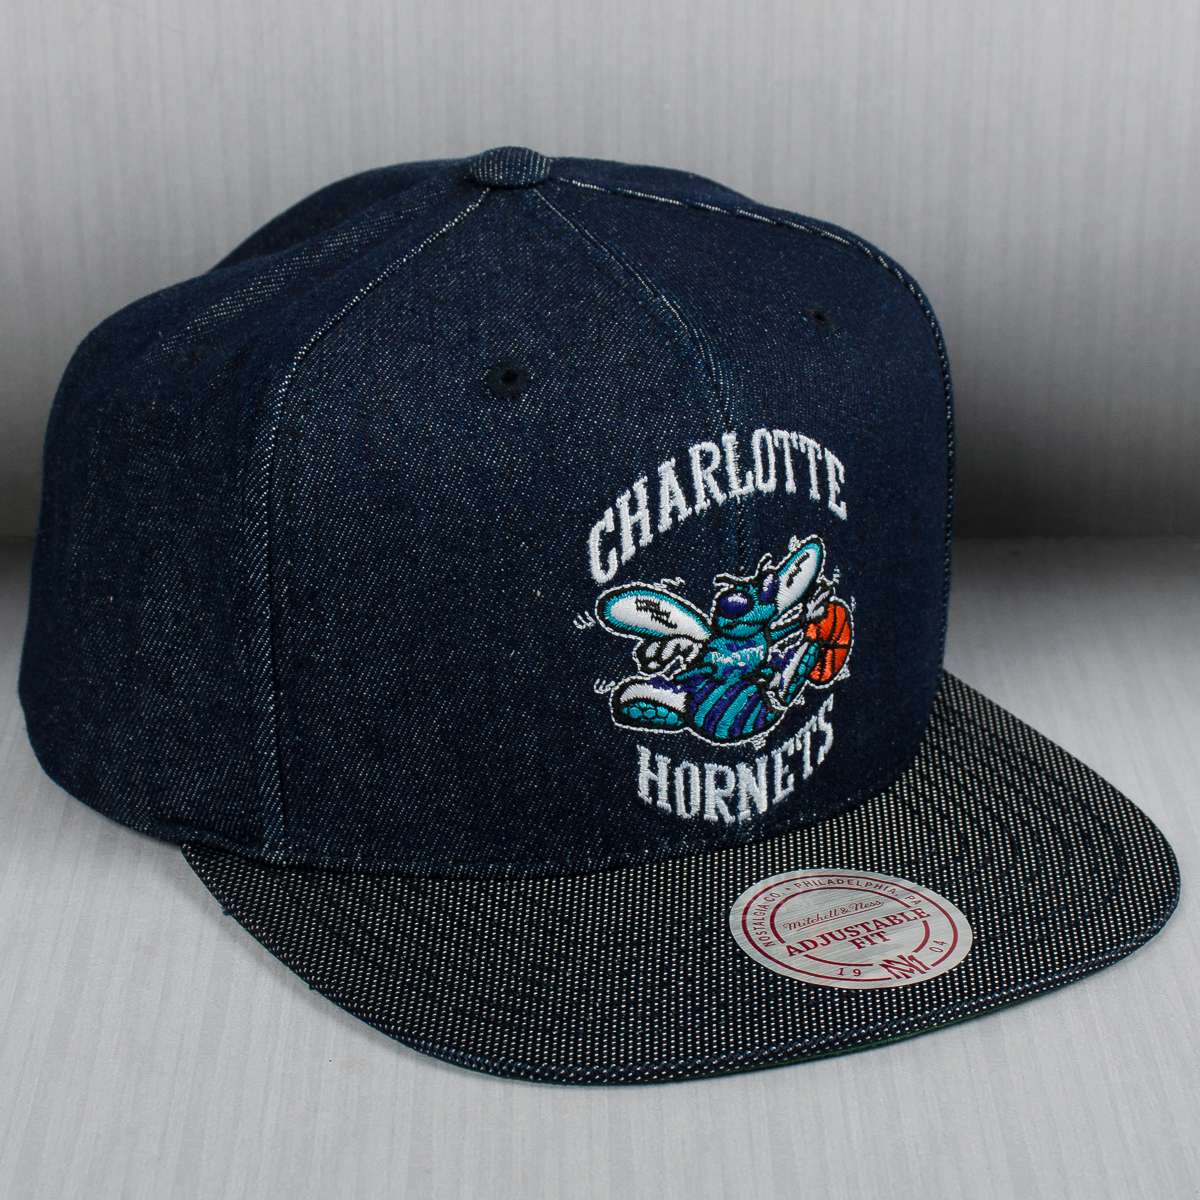 6168ee7f27550 ... where to buy mitchell ness nba charlotte hornets raw denim snapback cap  nba shop charlotte hornets